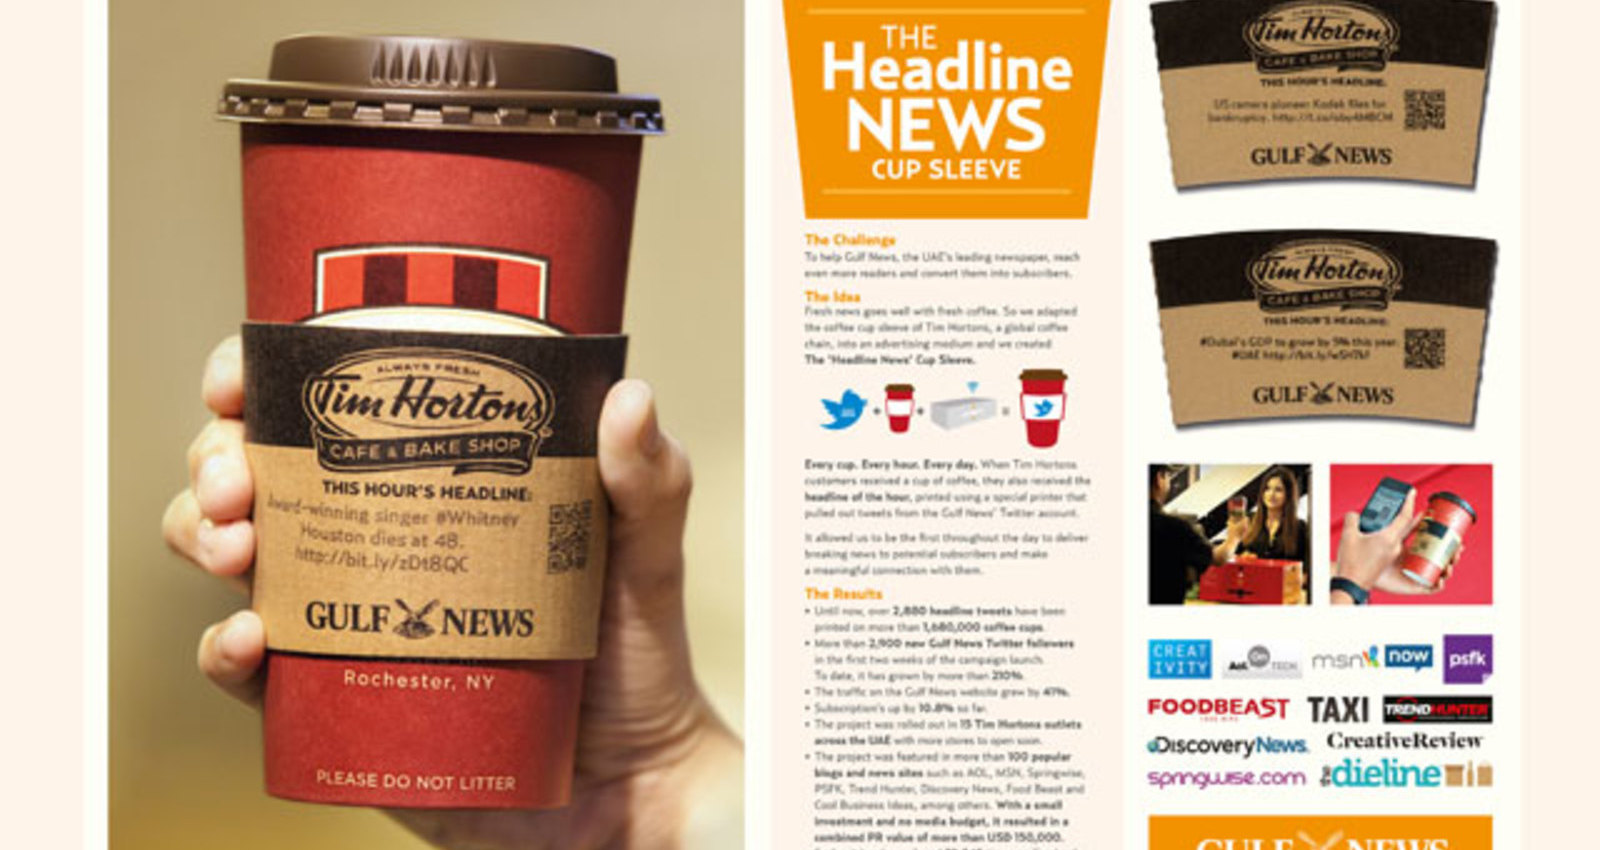 The 'Headline News' Cup Sleeve